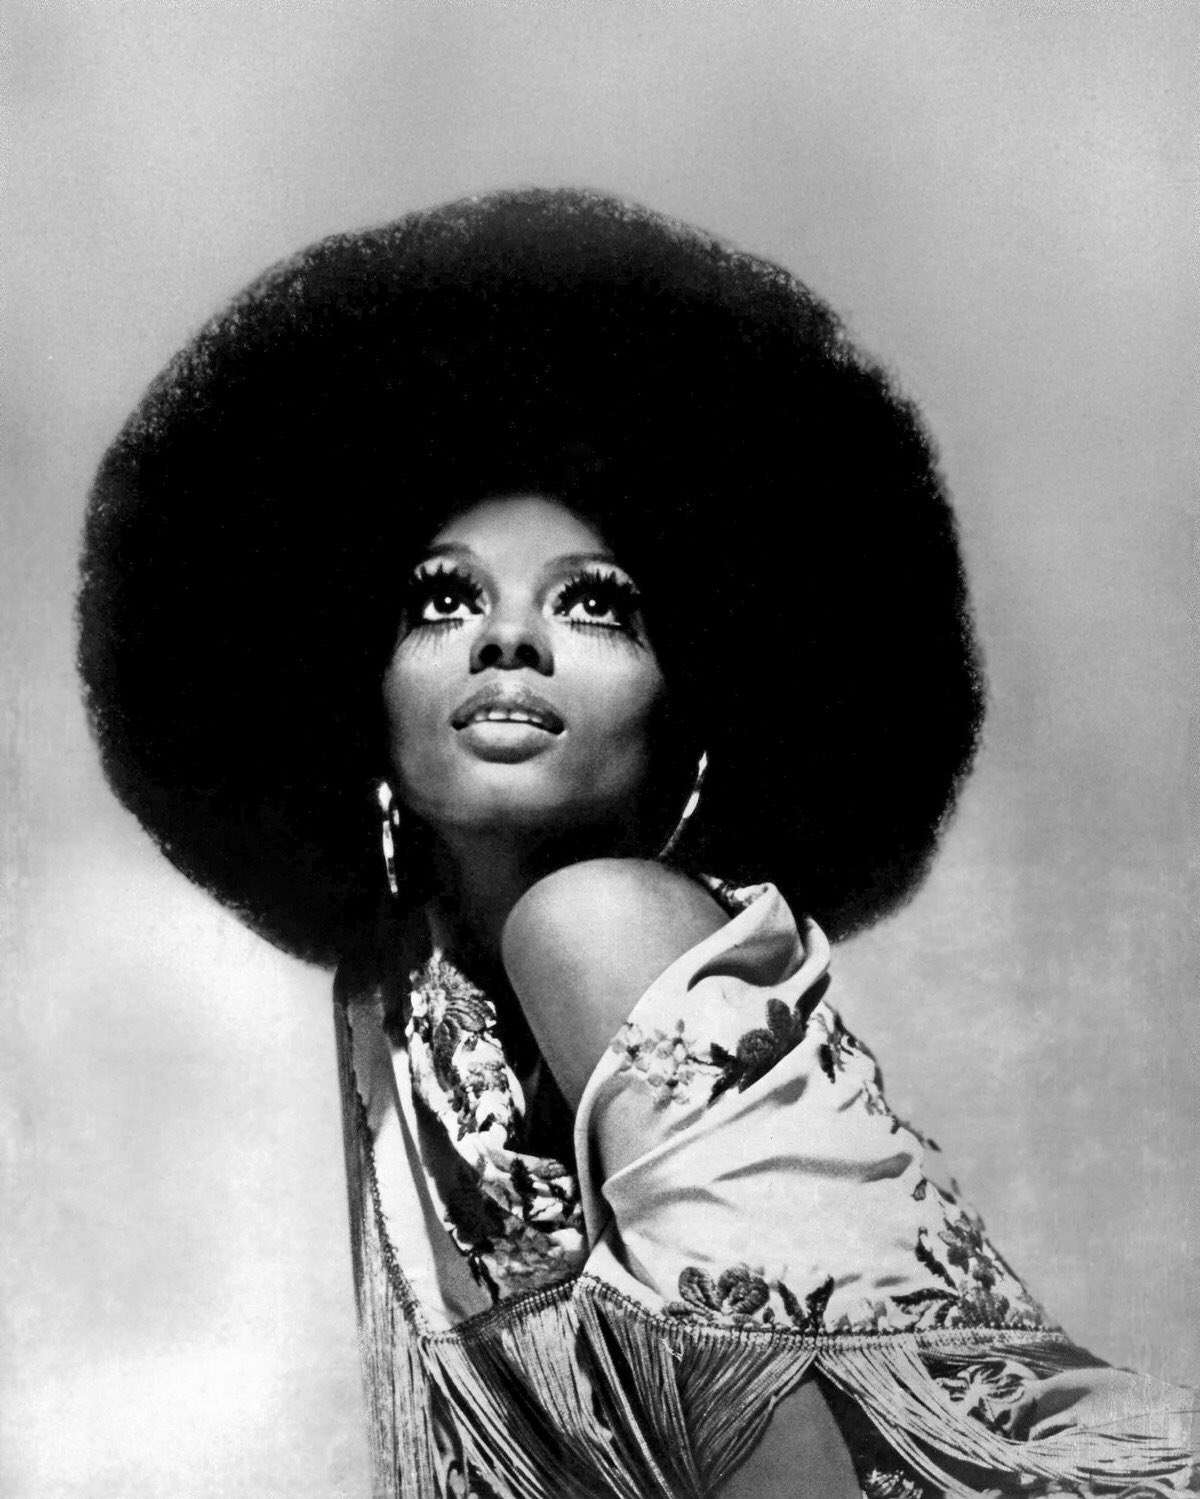 Happy 74th birthday to the legendary Diana Ross